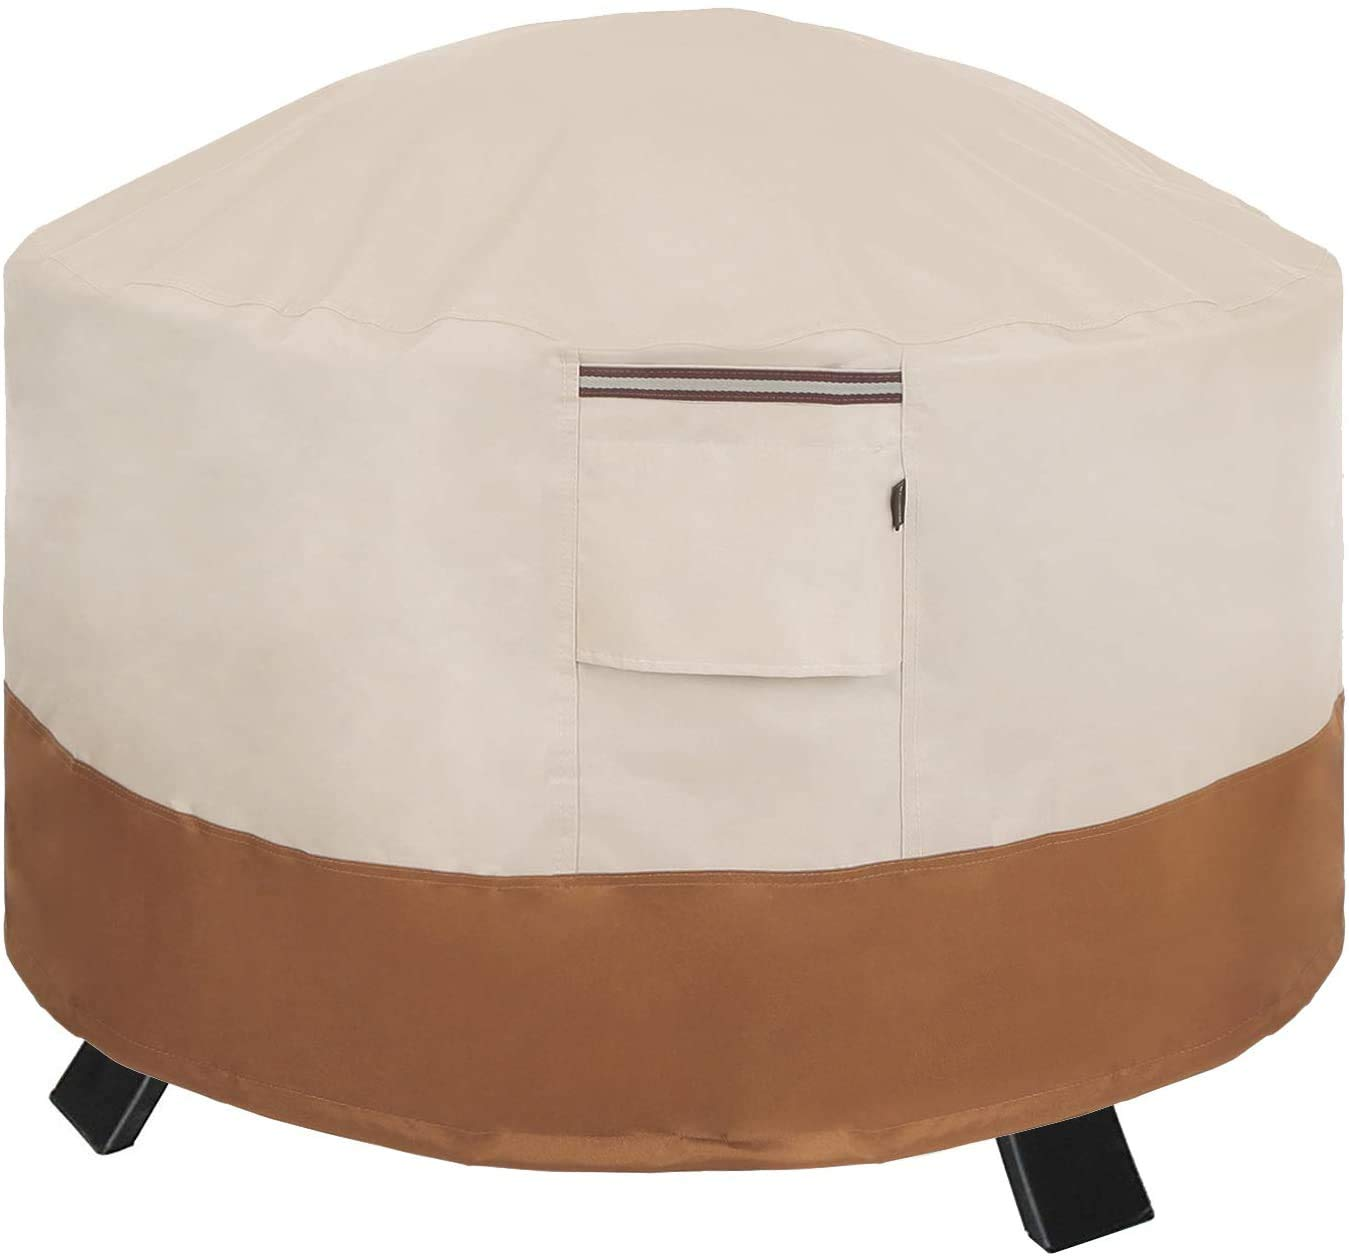 SONGMICS Round Fire Pit Cover 36 x 24 Inches (Dia. x H), 600D Patio Fire Pit Table Cover for Outdoor Garden, Waterproof and Anti-Fade, 36 x 24 Inches (Dia. x H) UGPC91EC